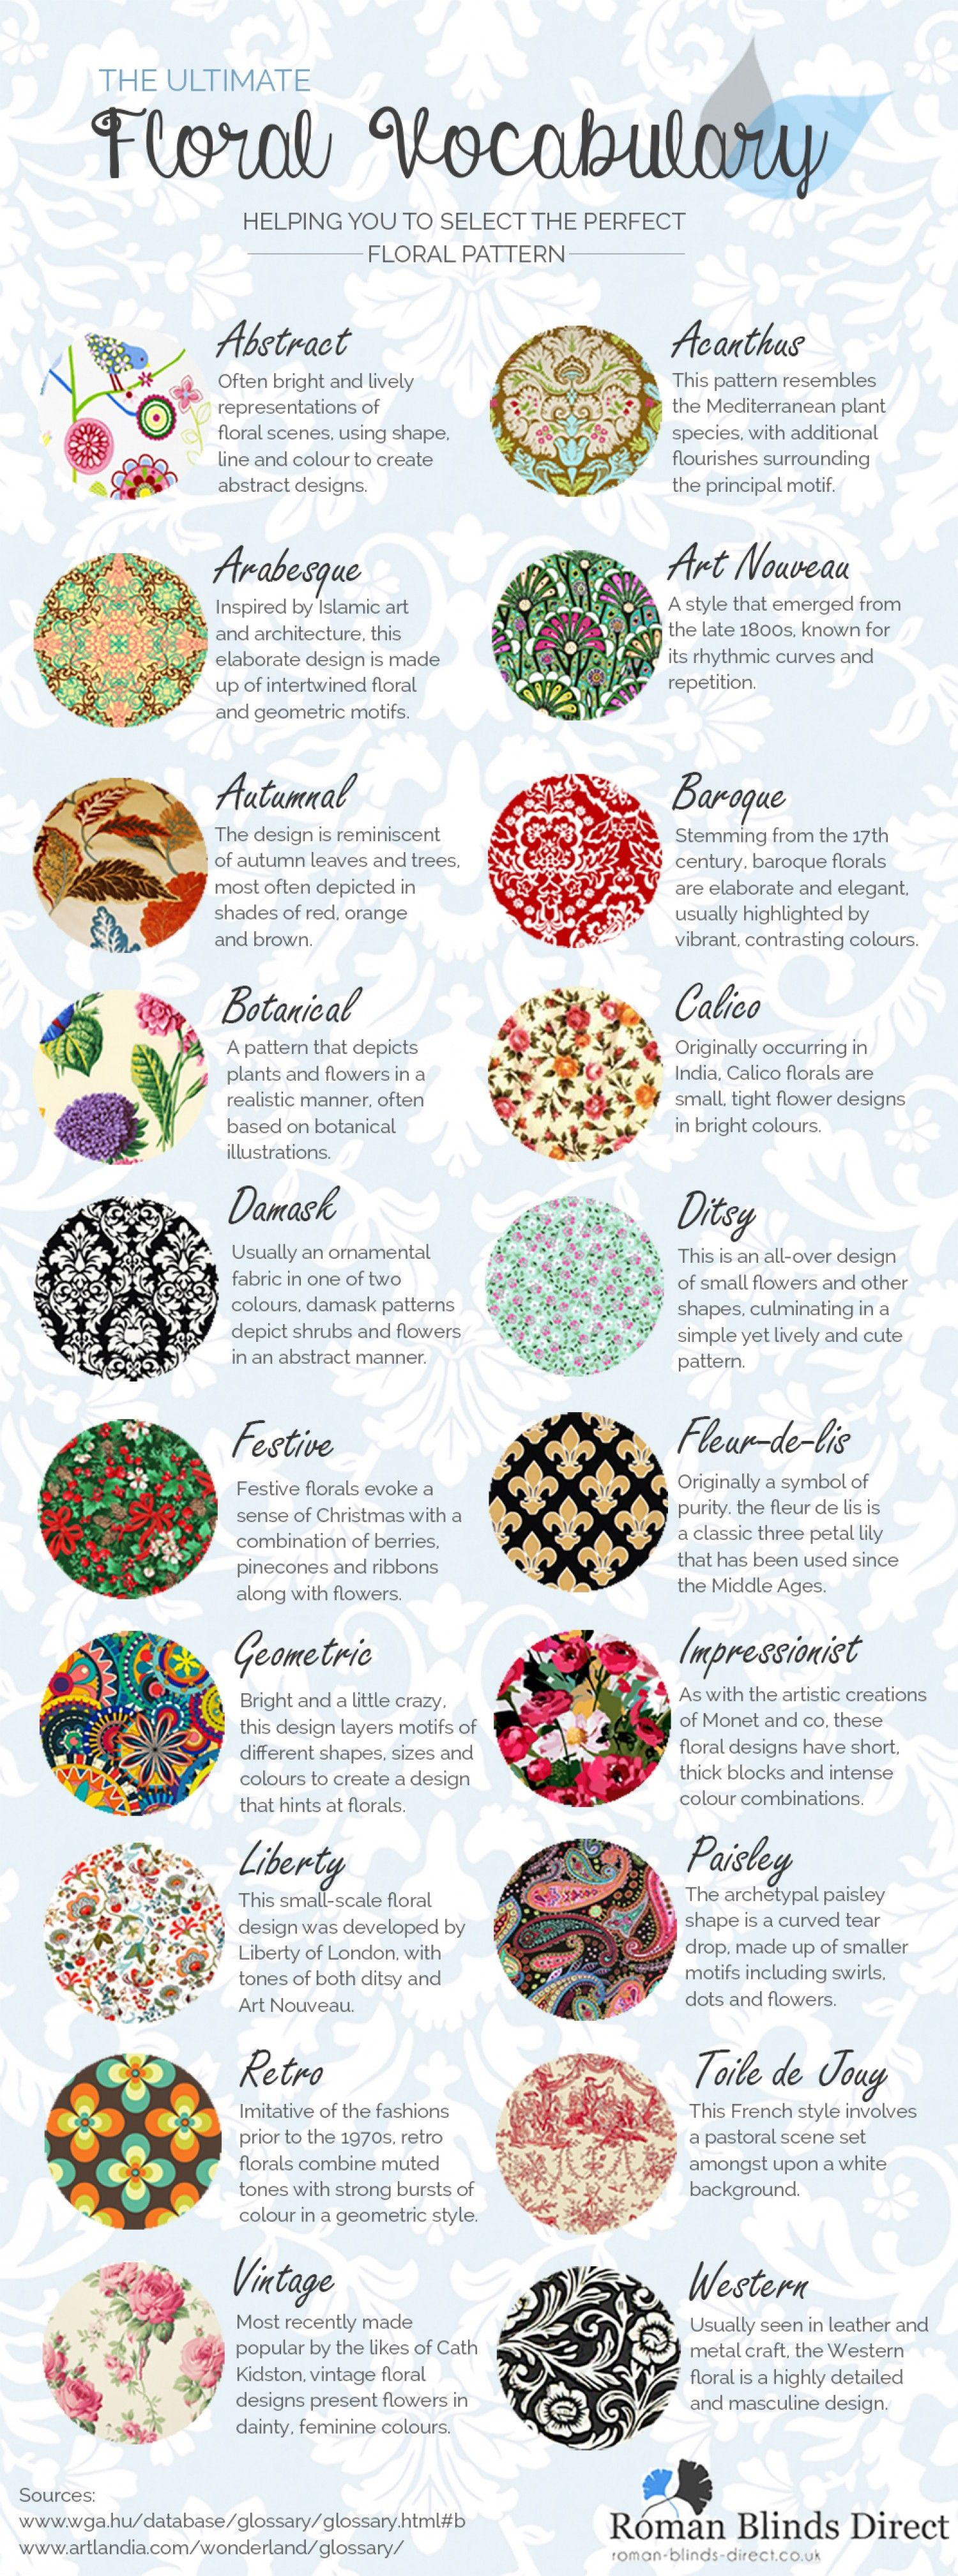 the ultimate floral vocabulary infographic useful classroom images pinterest infographic. Black Bedroom Furniture Sets. Home Design Ideas